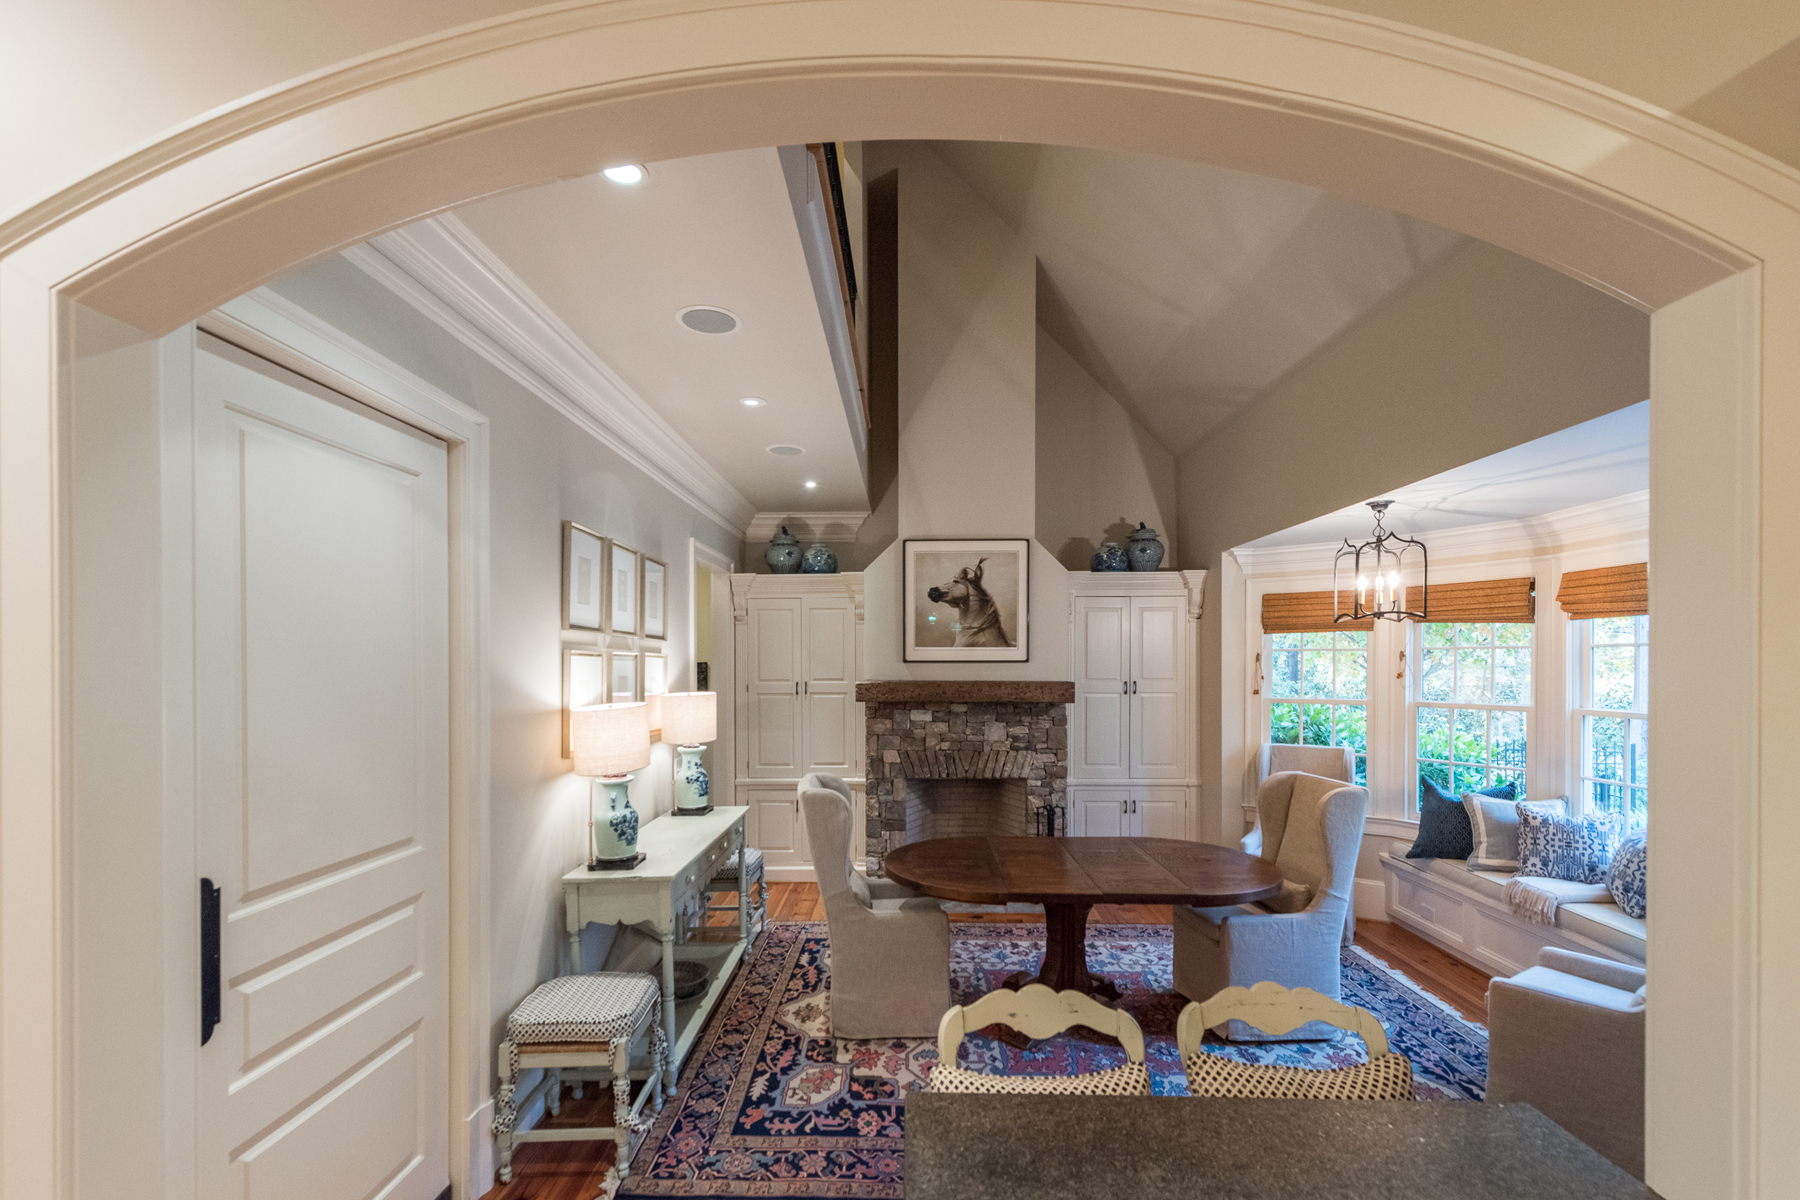 Additional photo for property listing at Beautiful Total Renovation On Quiet Cul-de-sac Street In Historic Brookhaven 4500 Club Valley Drive NE Atlanta, Джорджия 30319 Соединенные Штаты